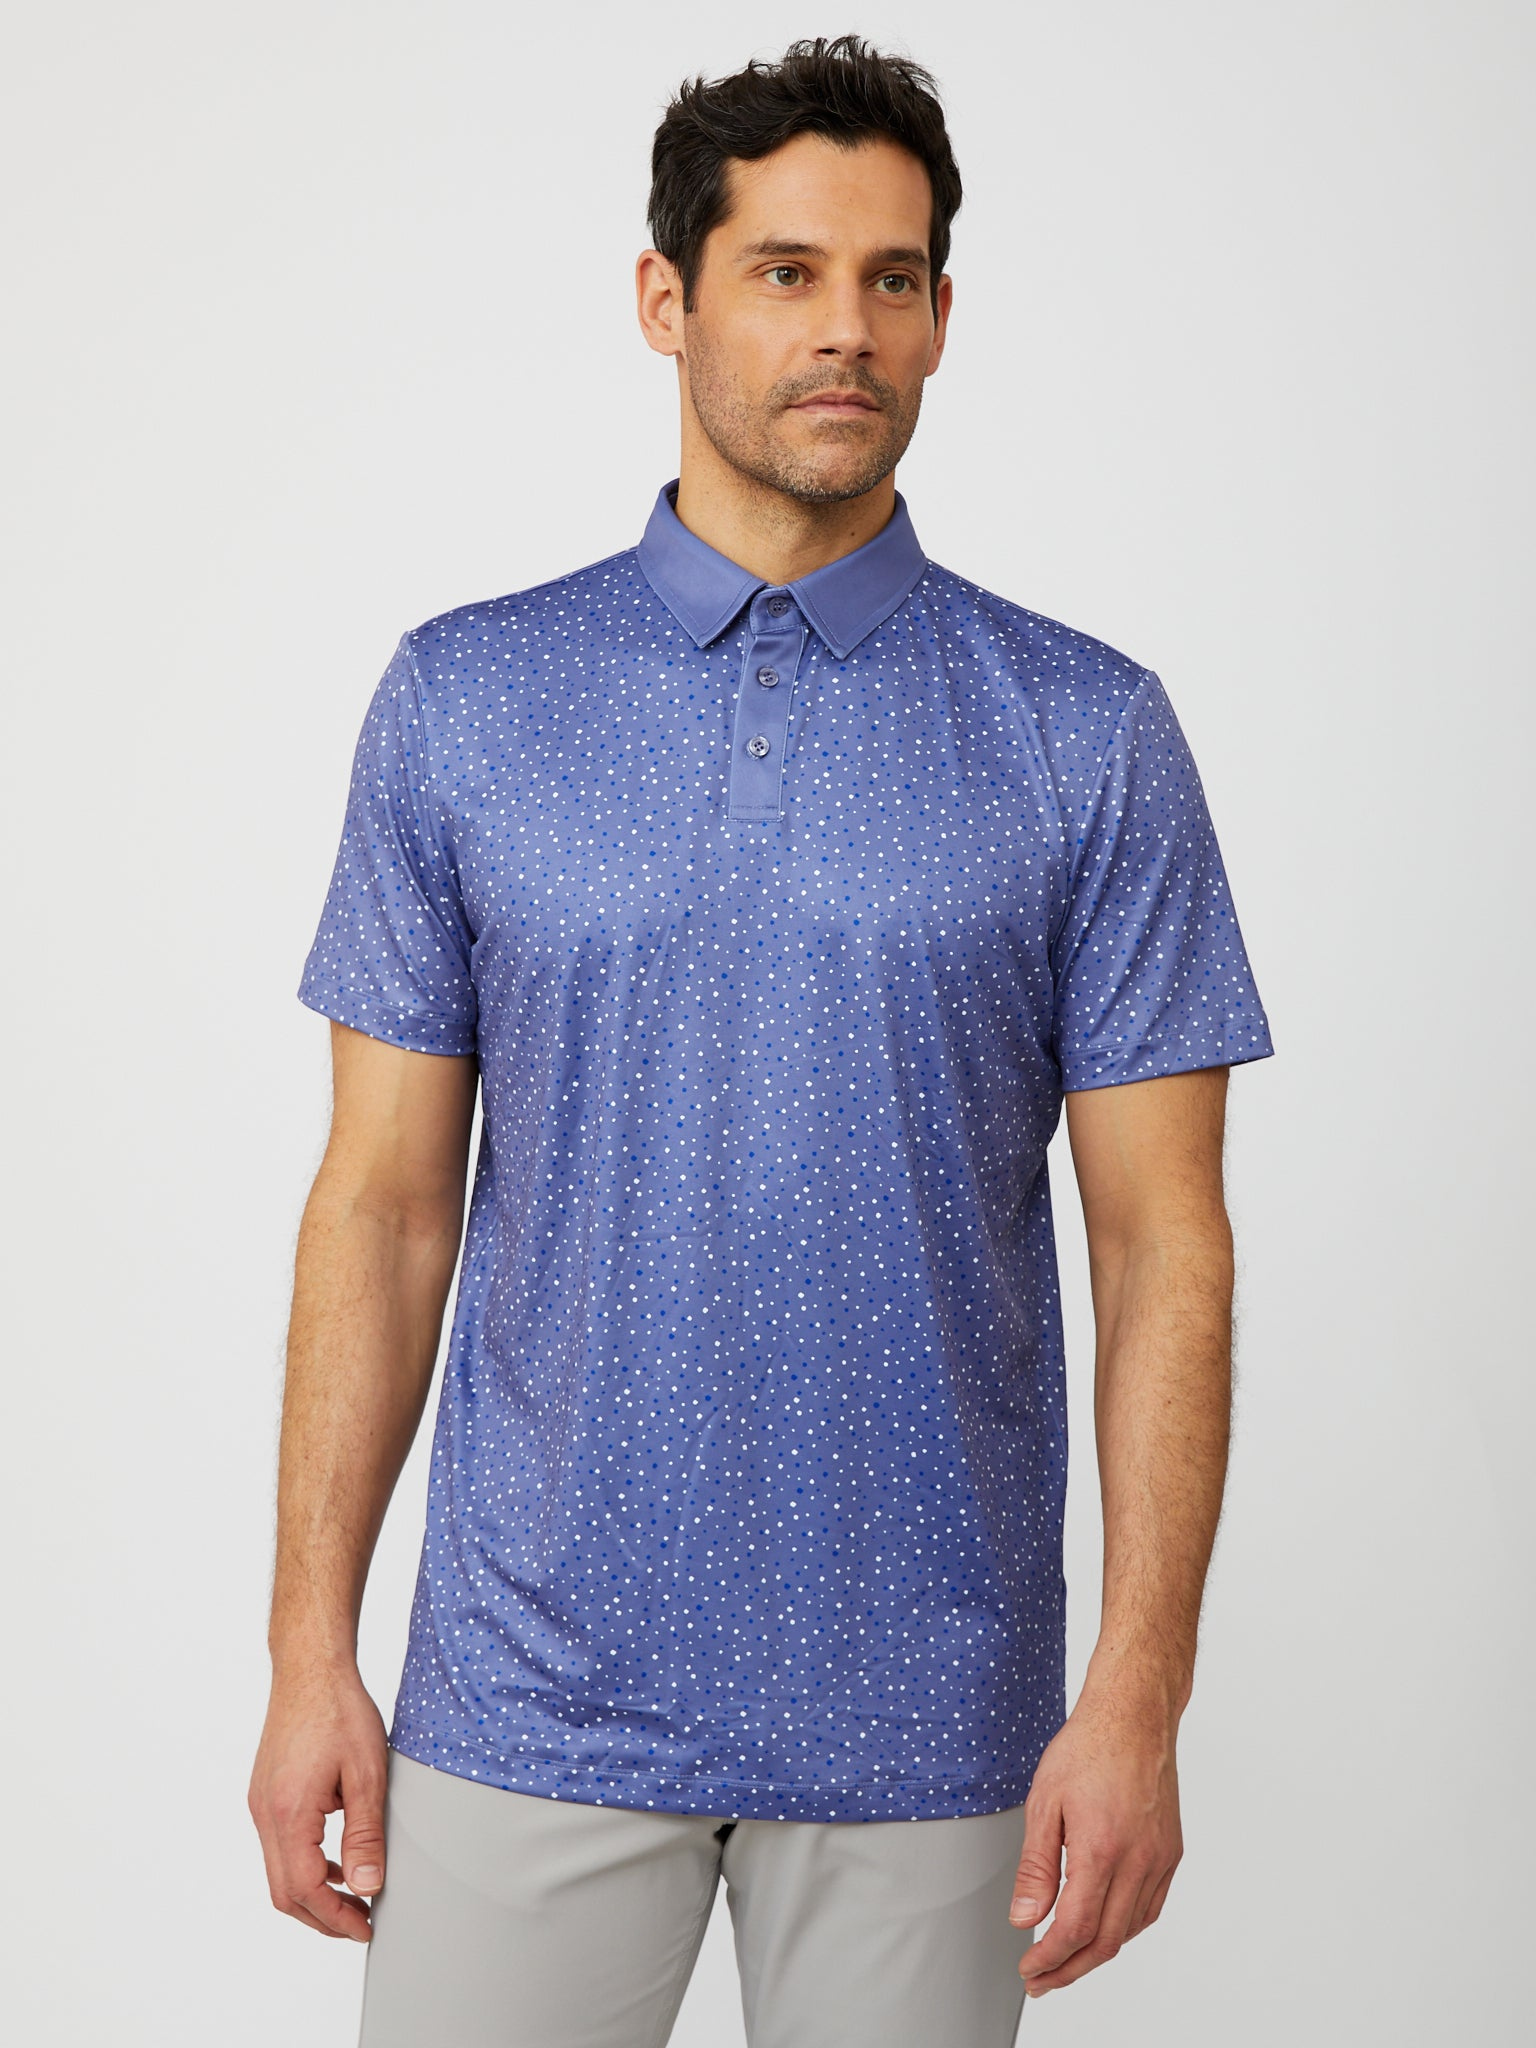 Upton Polo in Heron/Multi